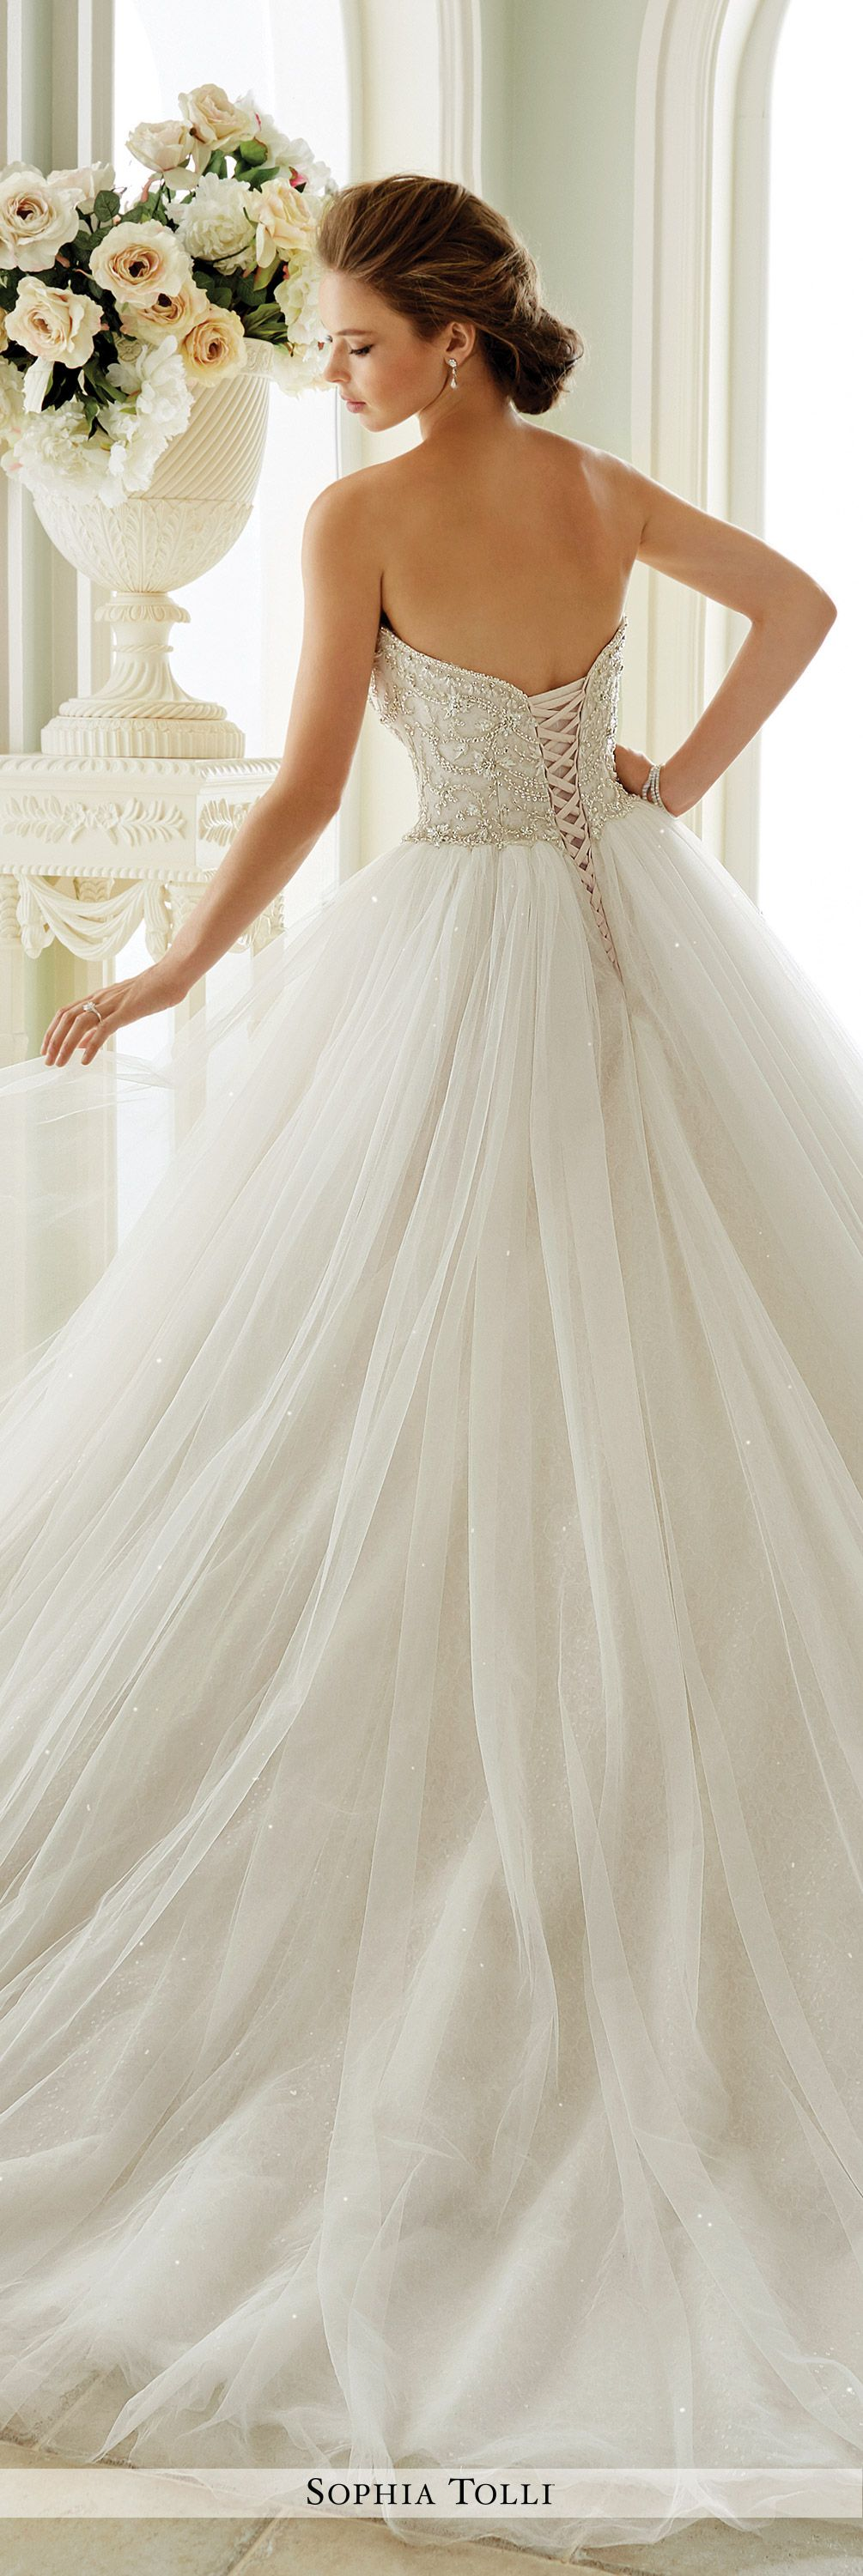 Tulle Wedding Gown - Sophia Tolli Y21663 | Pinterest ...